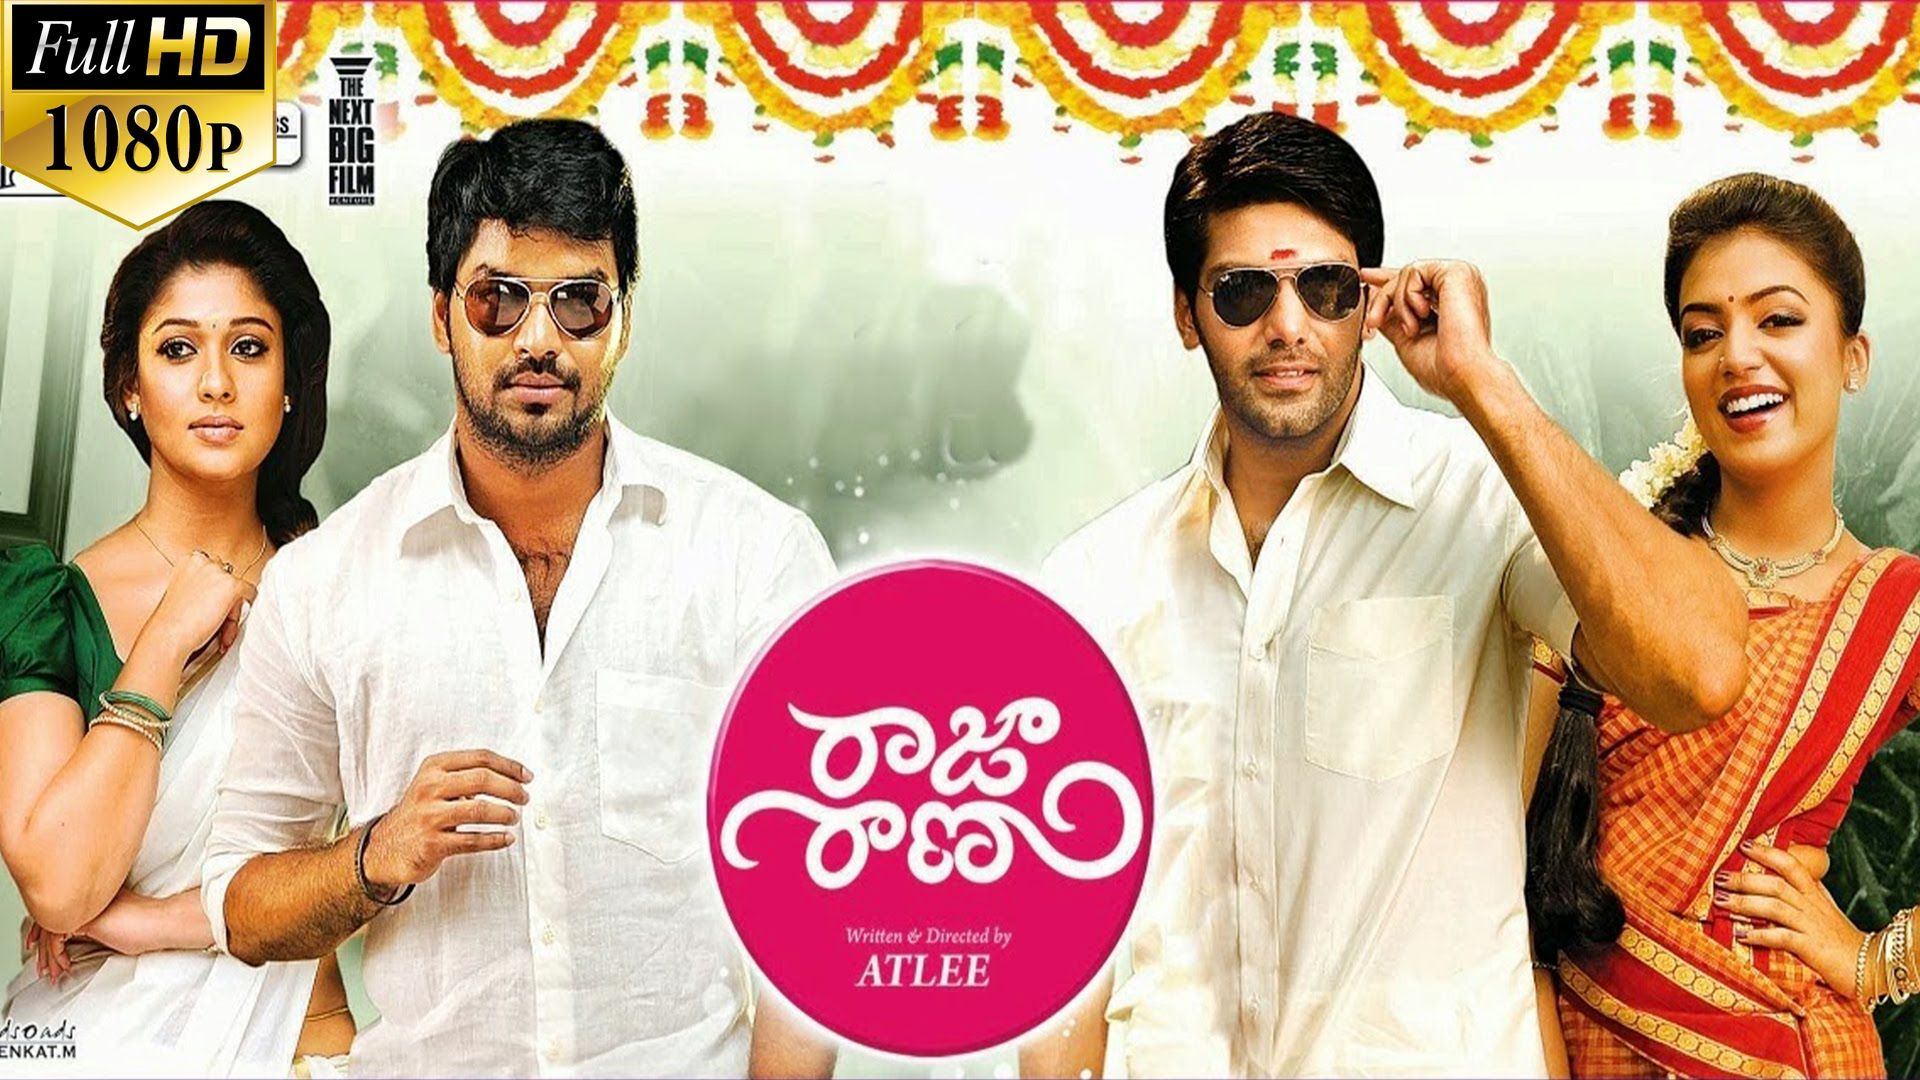 Raja Rani Telugu Full HD Movie Cast:  Aarya, Nayanthara, Jai, Nazriya Nazim